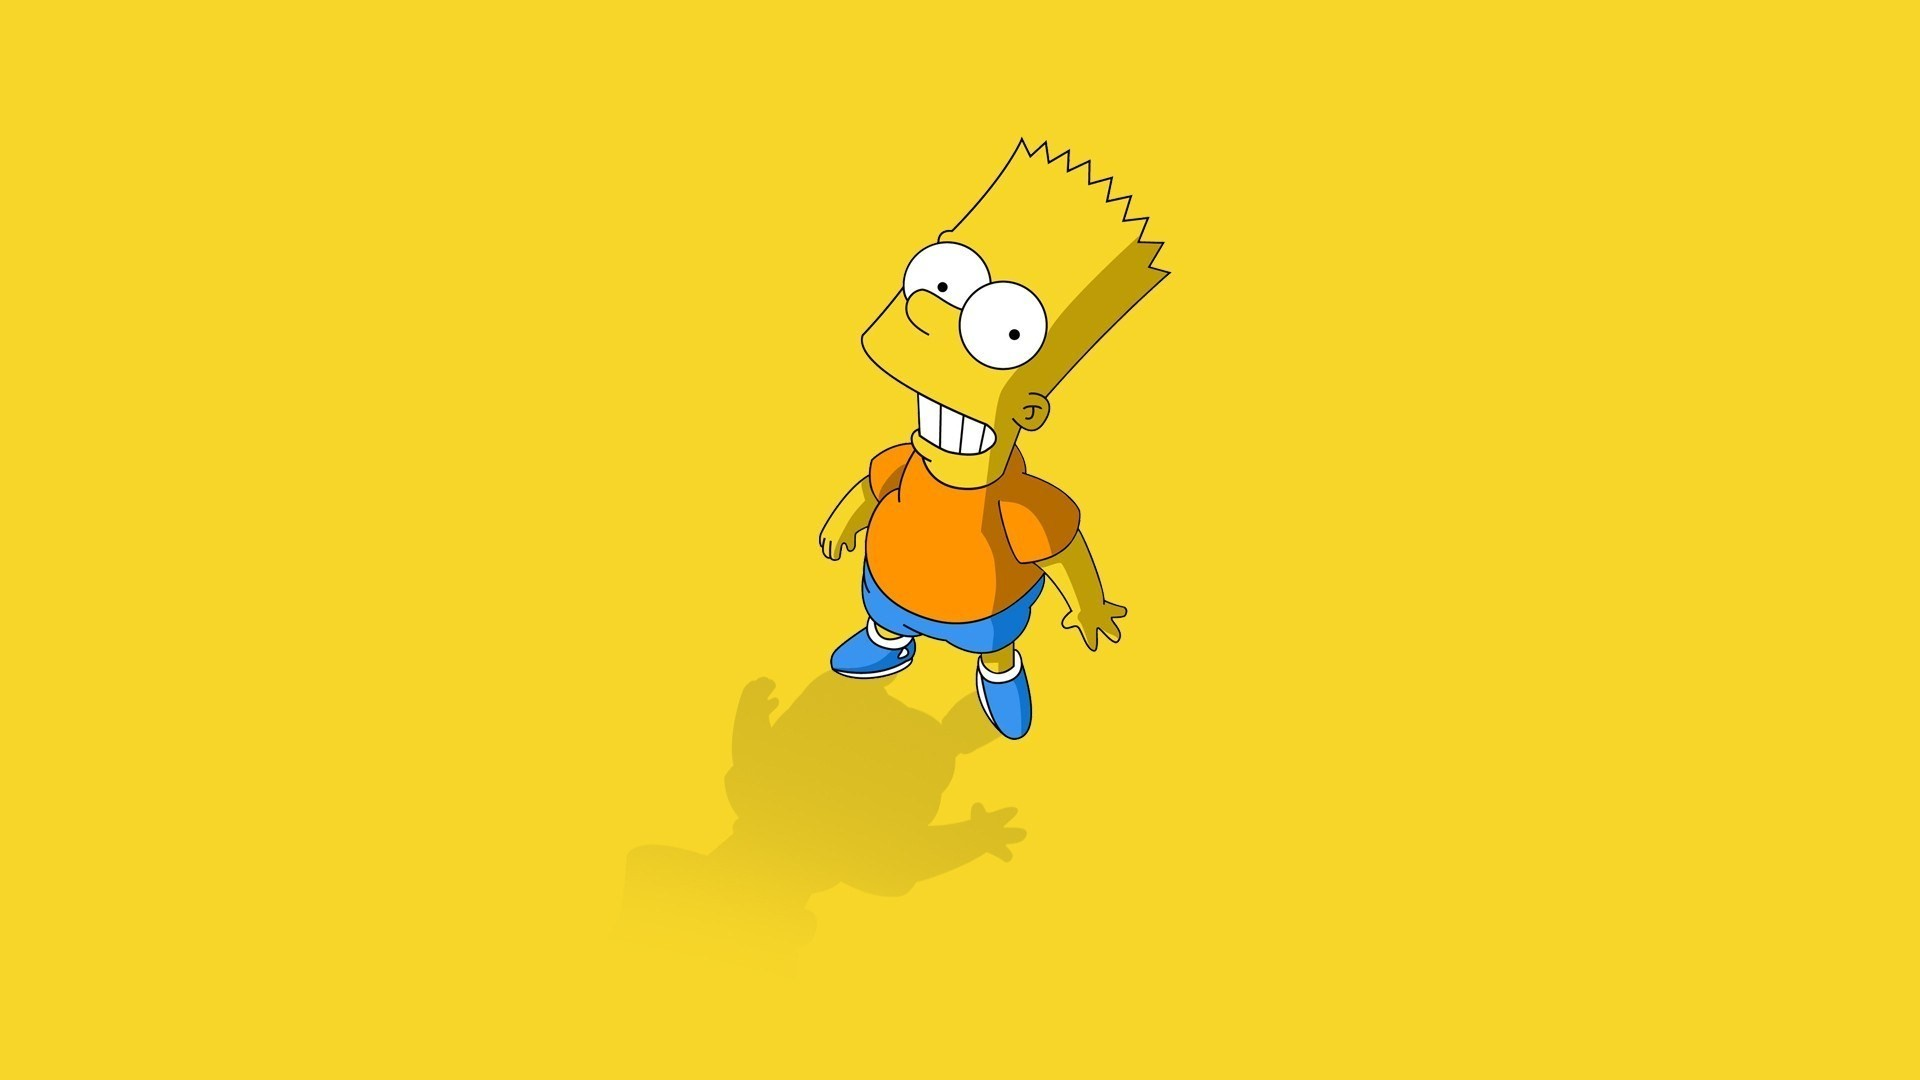 160 Aesthetic Simpsons Wallpaper Ideas to Choose